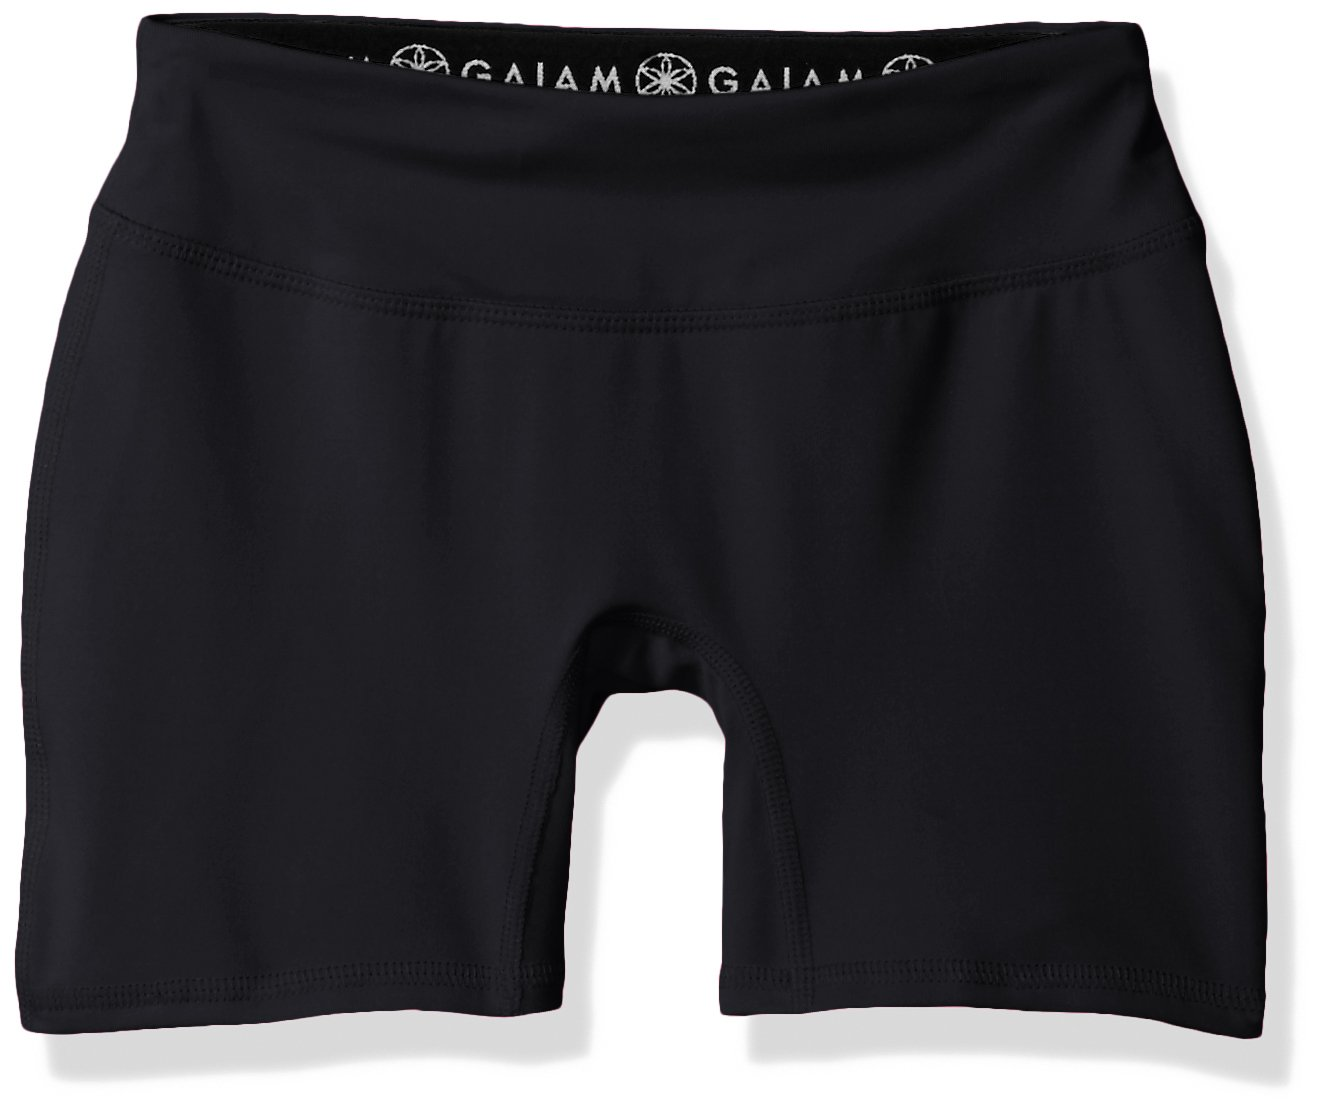 Gaiam Big Girls' Yoga Boy Short, Black, 7/8